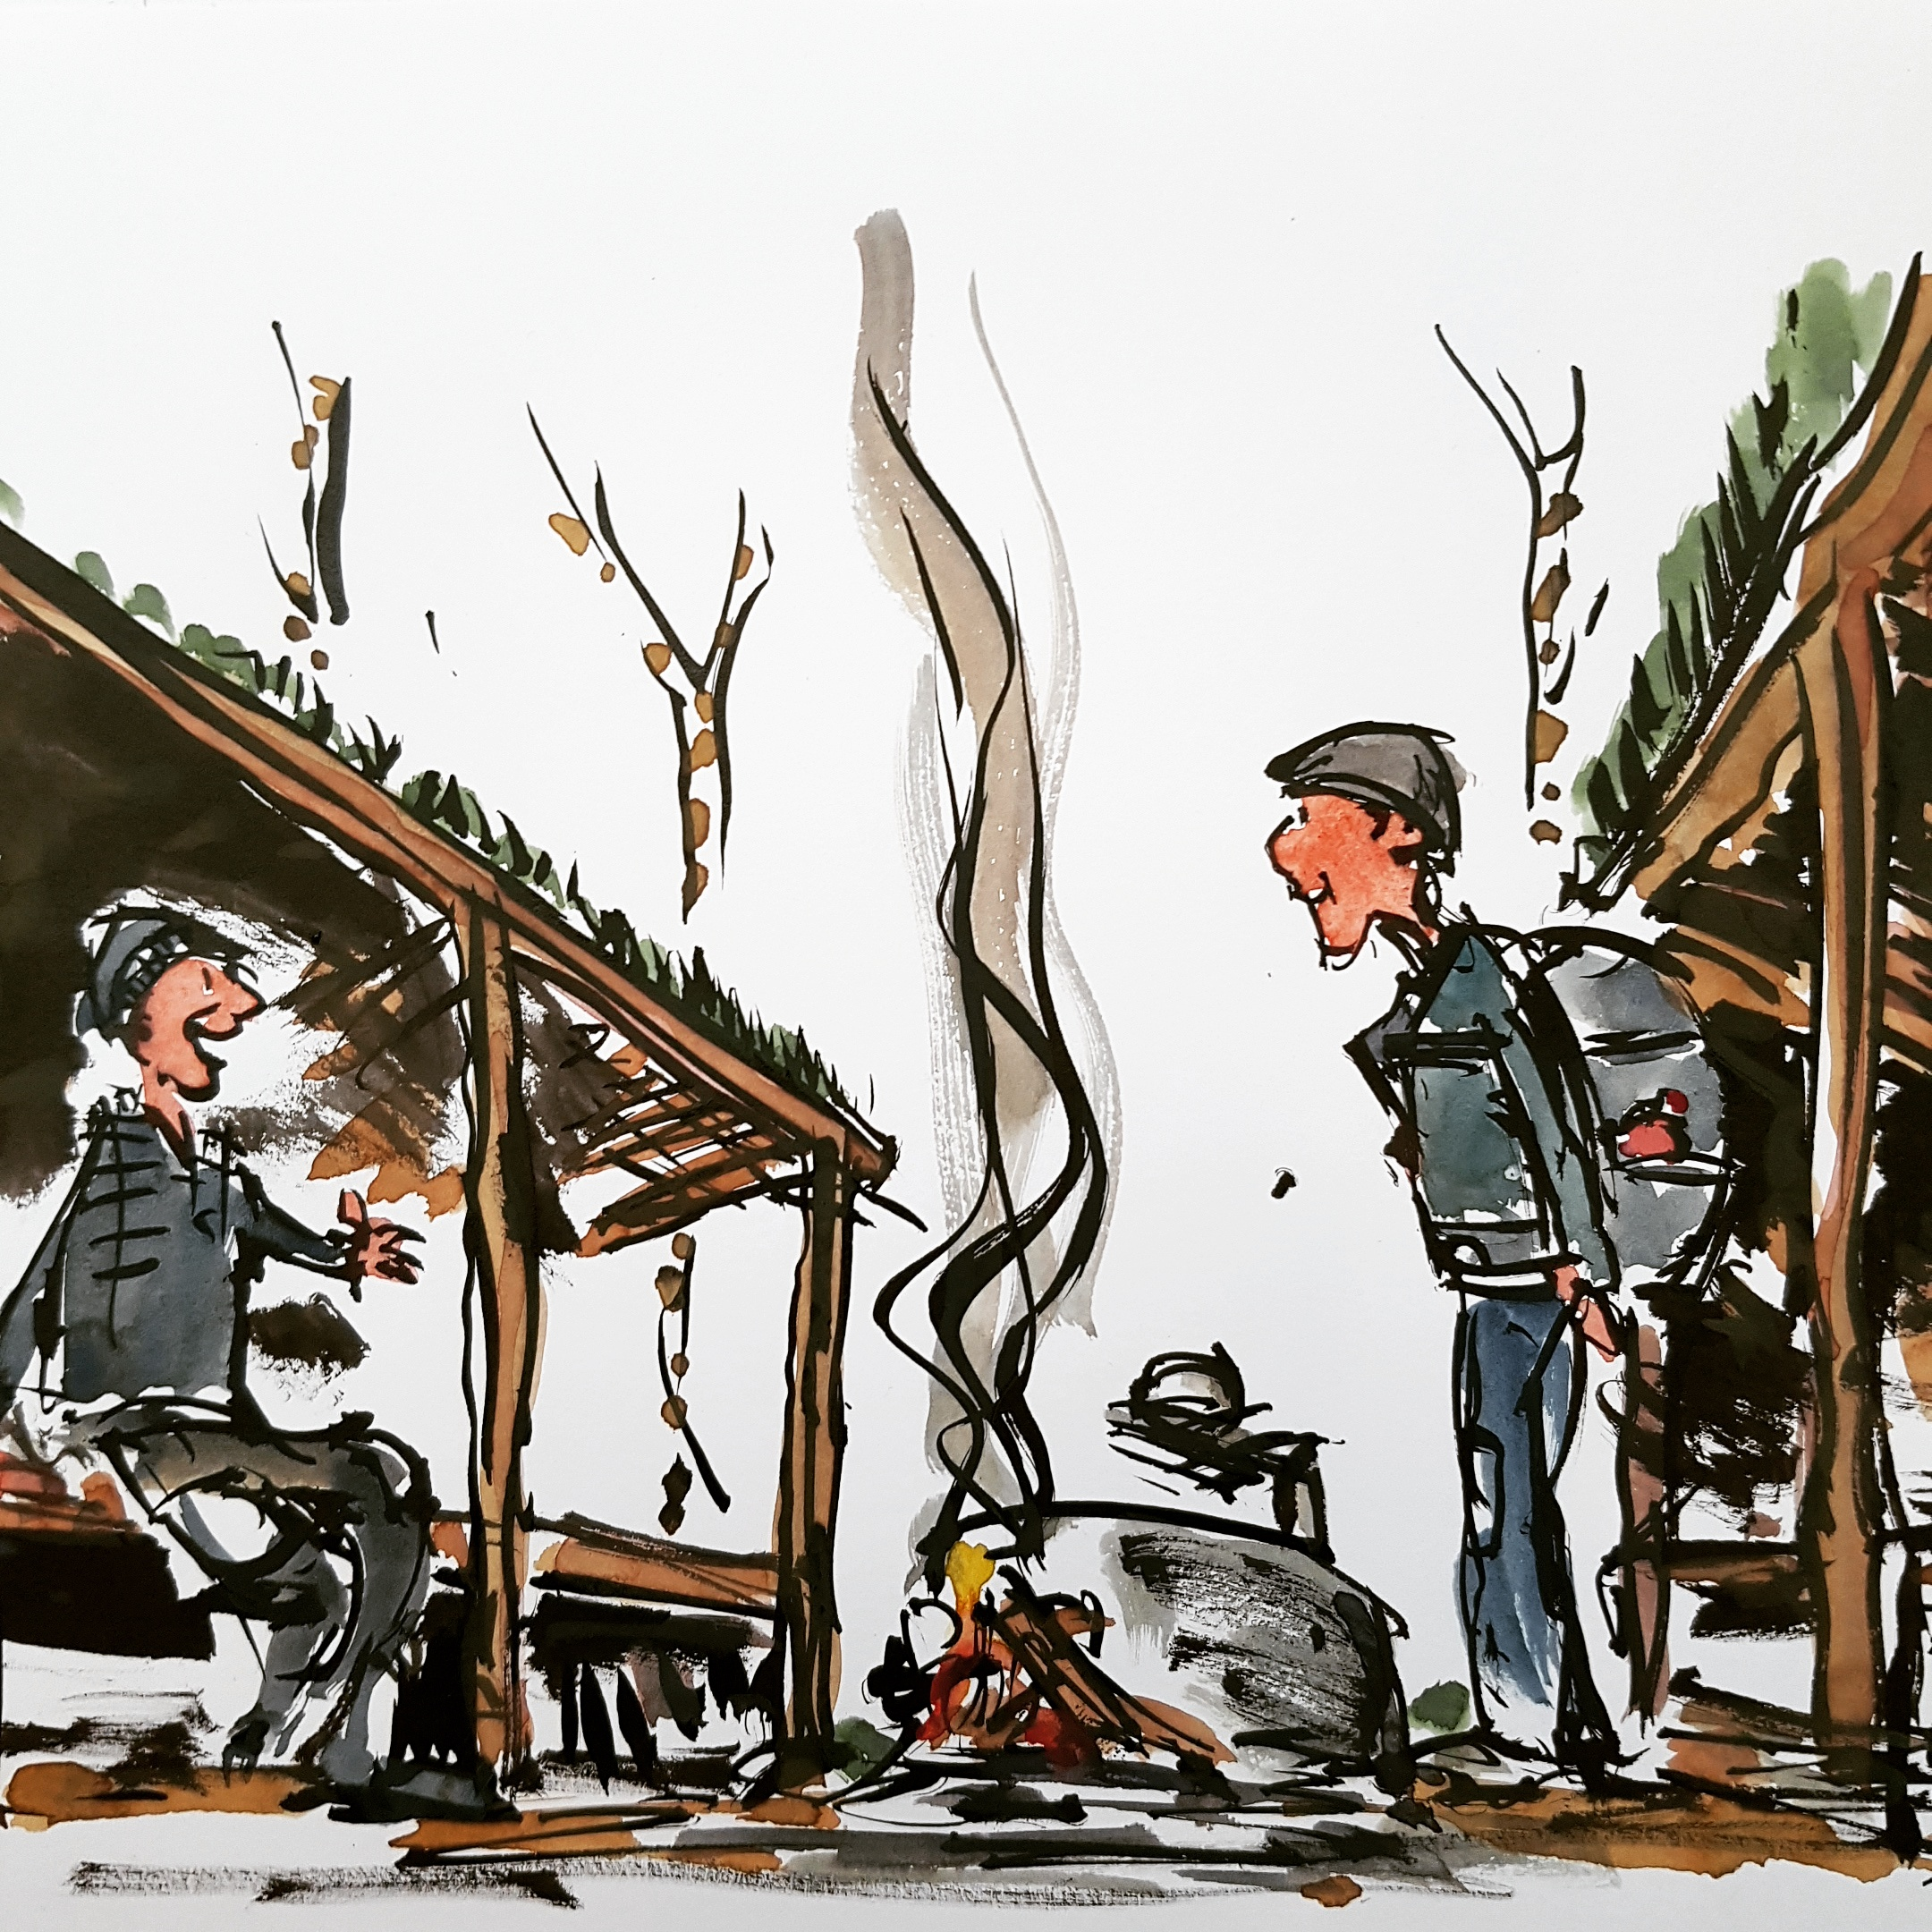 Two hikers at a shelter by the fire